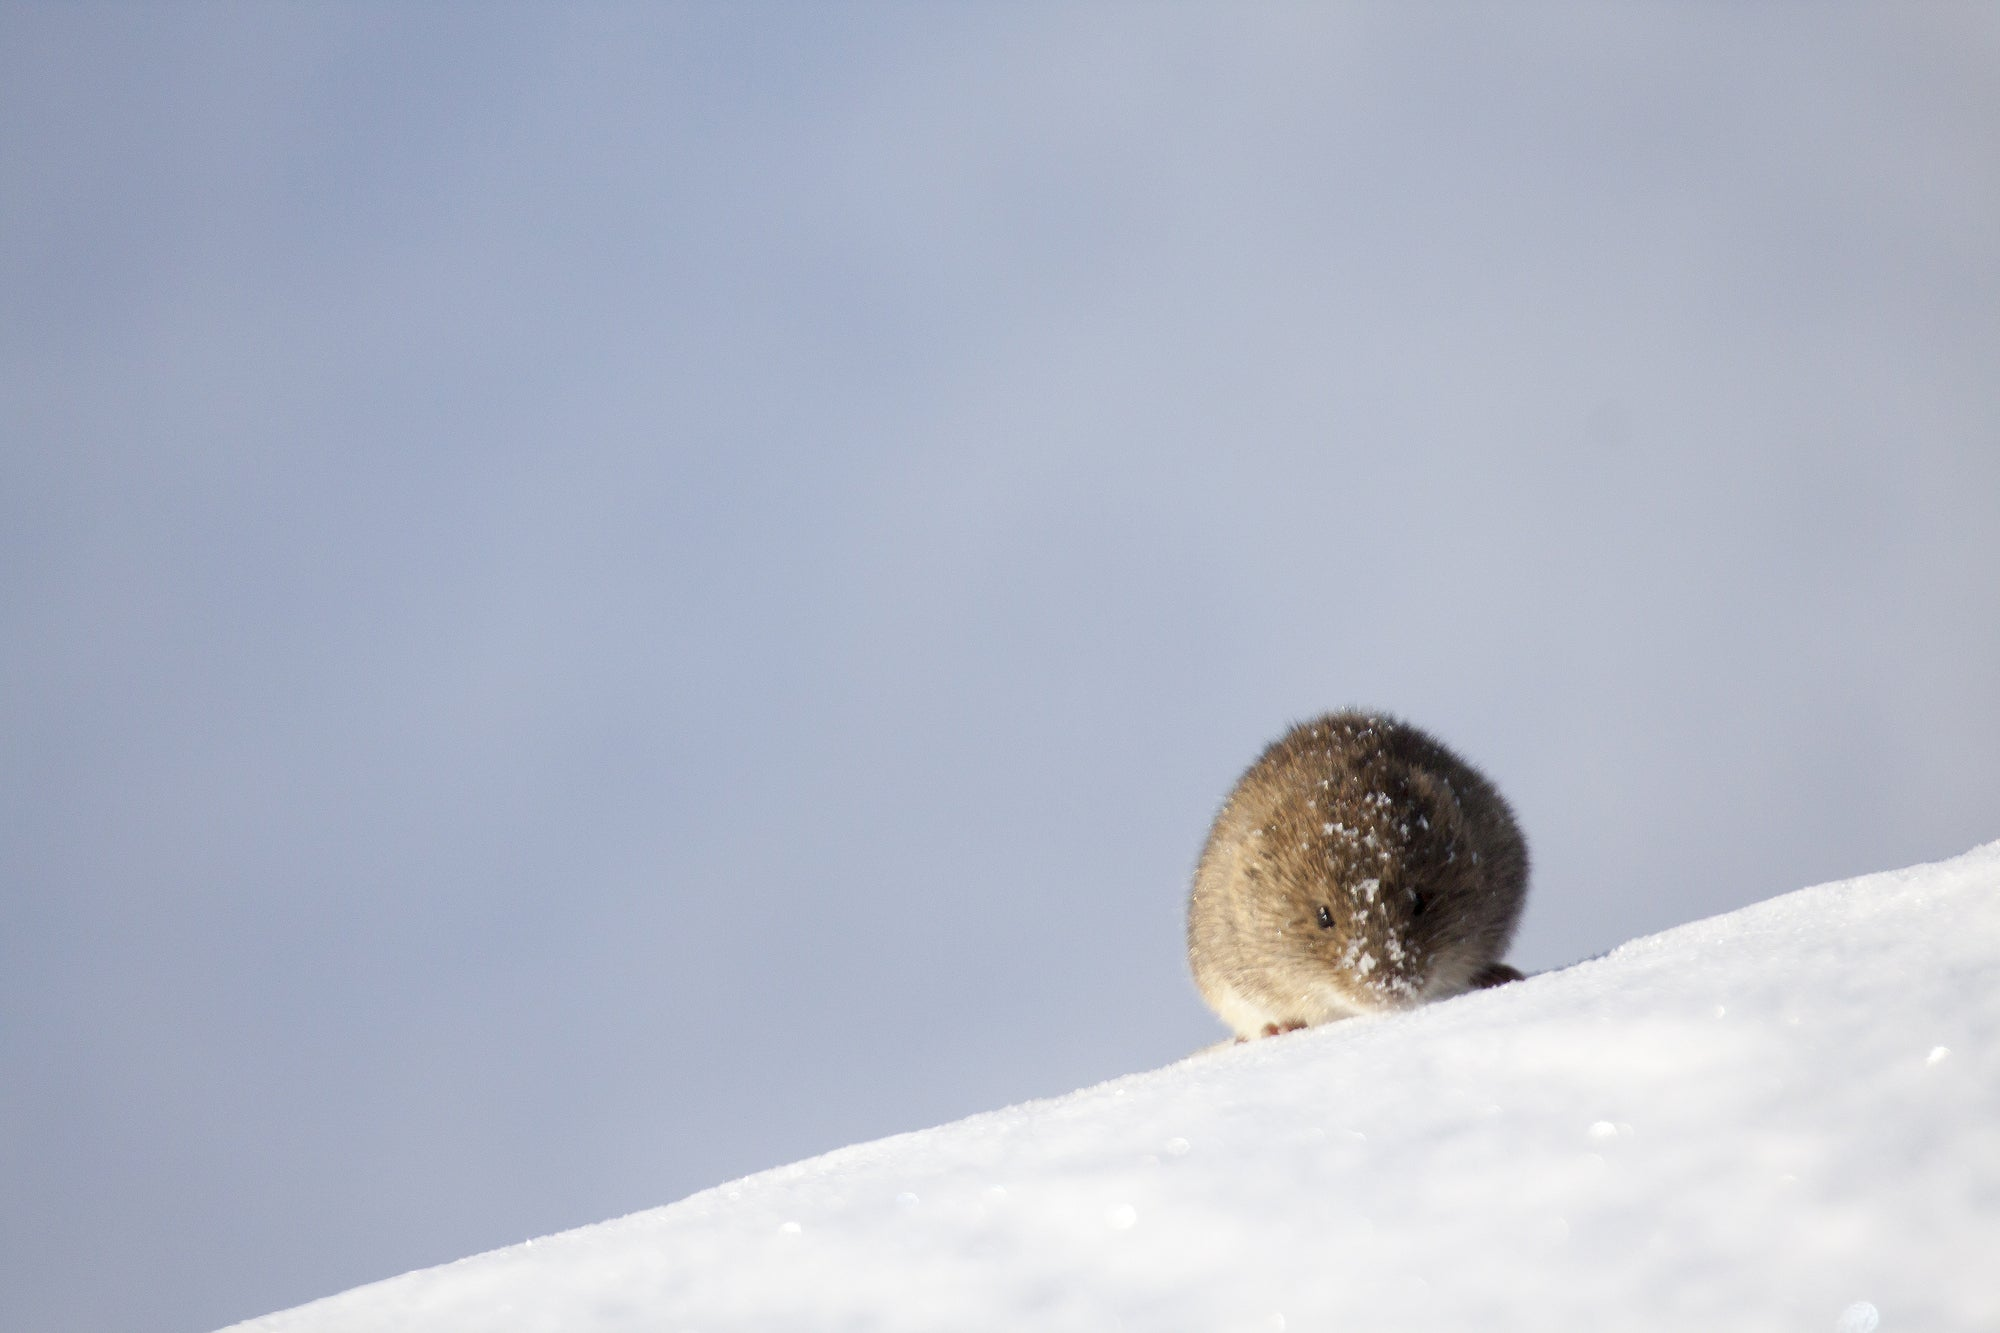 A small rodent scurries across the snow.